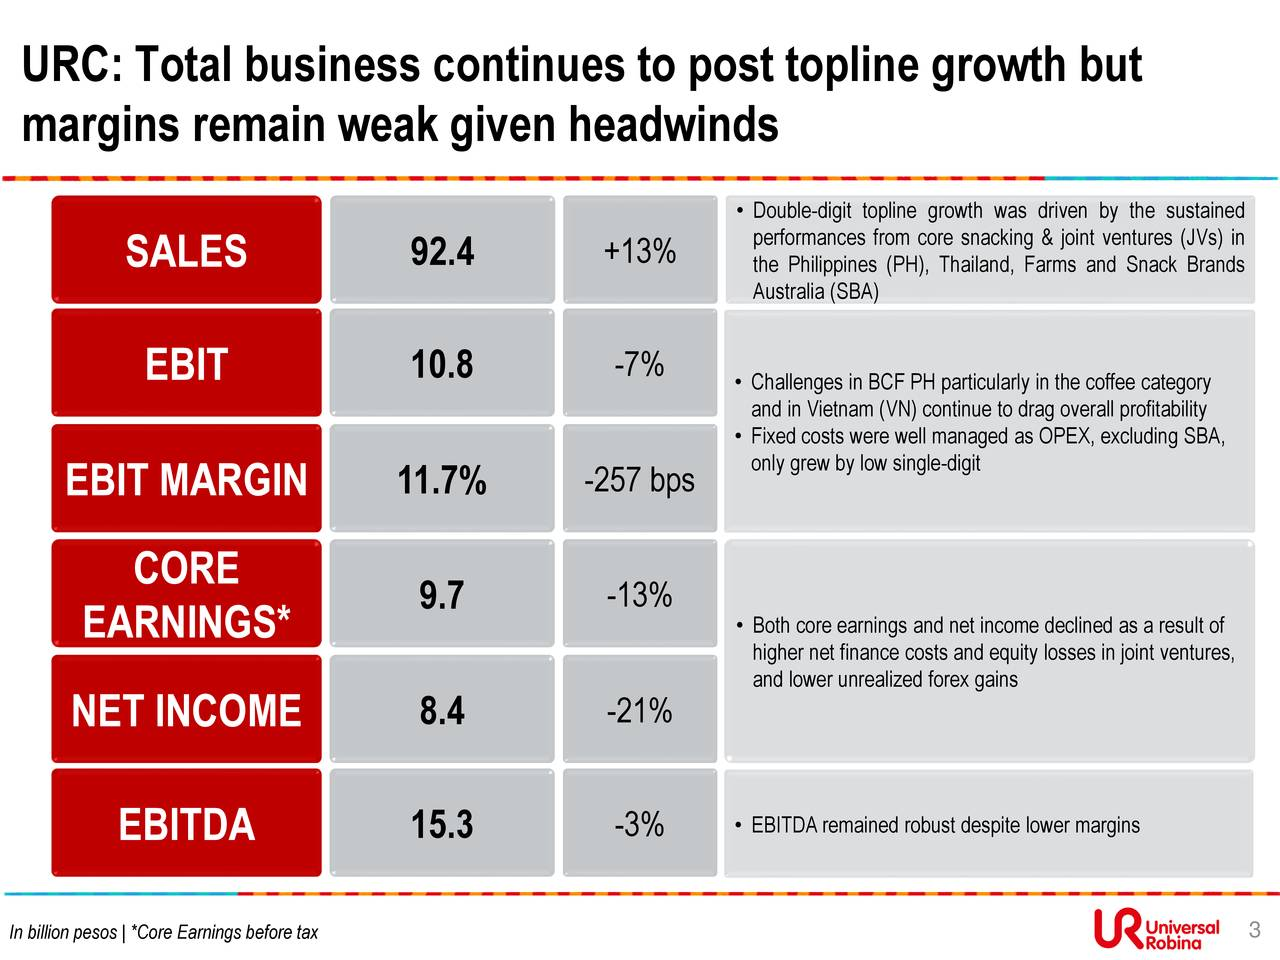 margins remain weak given headwinds • Double-digit topline growth was driven by the sustained performances from core snacking & joint ventures (JVs) in SALES 92.4 +13% the Philippines (PH), Thailand, Farms and Snack Brands Australia (SBA) EBIT 10.8 -7% • Challenges in BCF PH particularly in the coffee category and in Vietnam (VN) continue to drag overall profitability • Fixed costs were well managed as OPEX, excluding SBA, EBIT MARGIN 11.7% -257 bps only grew by low single-digit CORE 9.7 -13% • Both core earnings and net income declined as a result of EARNINGS* higher net finance costs and equity losses in joint ventures, and lower unrealized forex gains NET INCOME 8.4 -21% EBITDA 15.3 -3% • EBITDAremained robust despite lower margins In billion pesos   *Core Earnings before tax 3